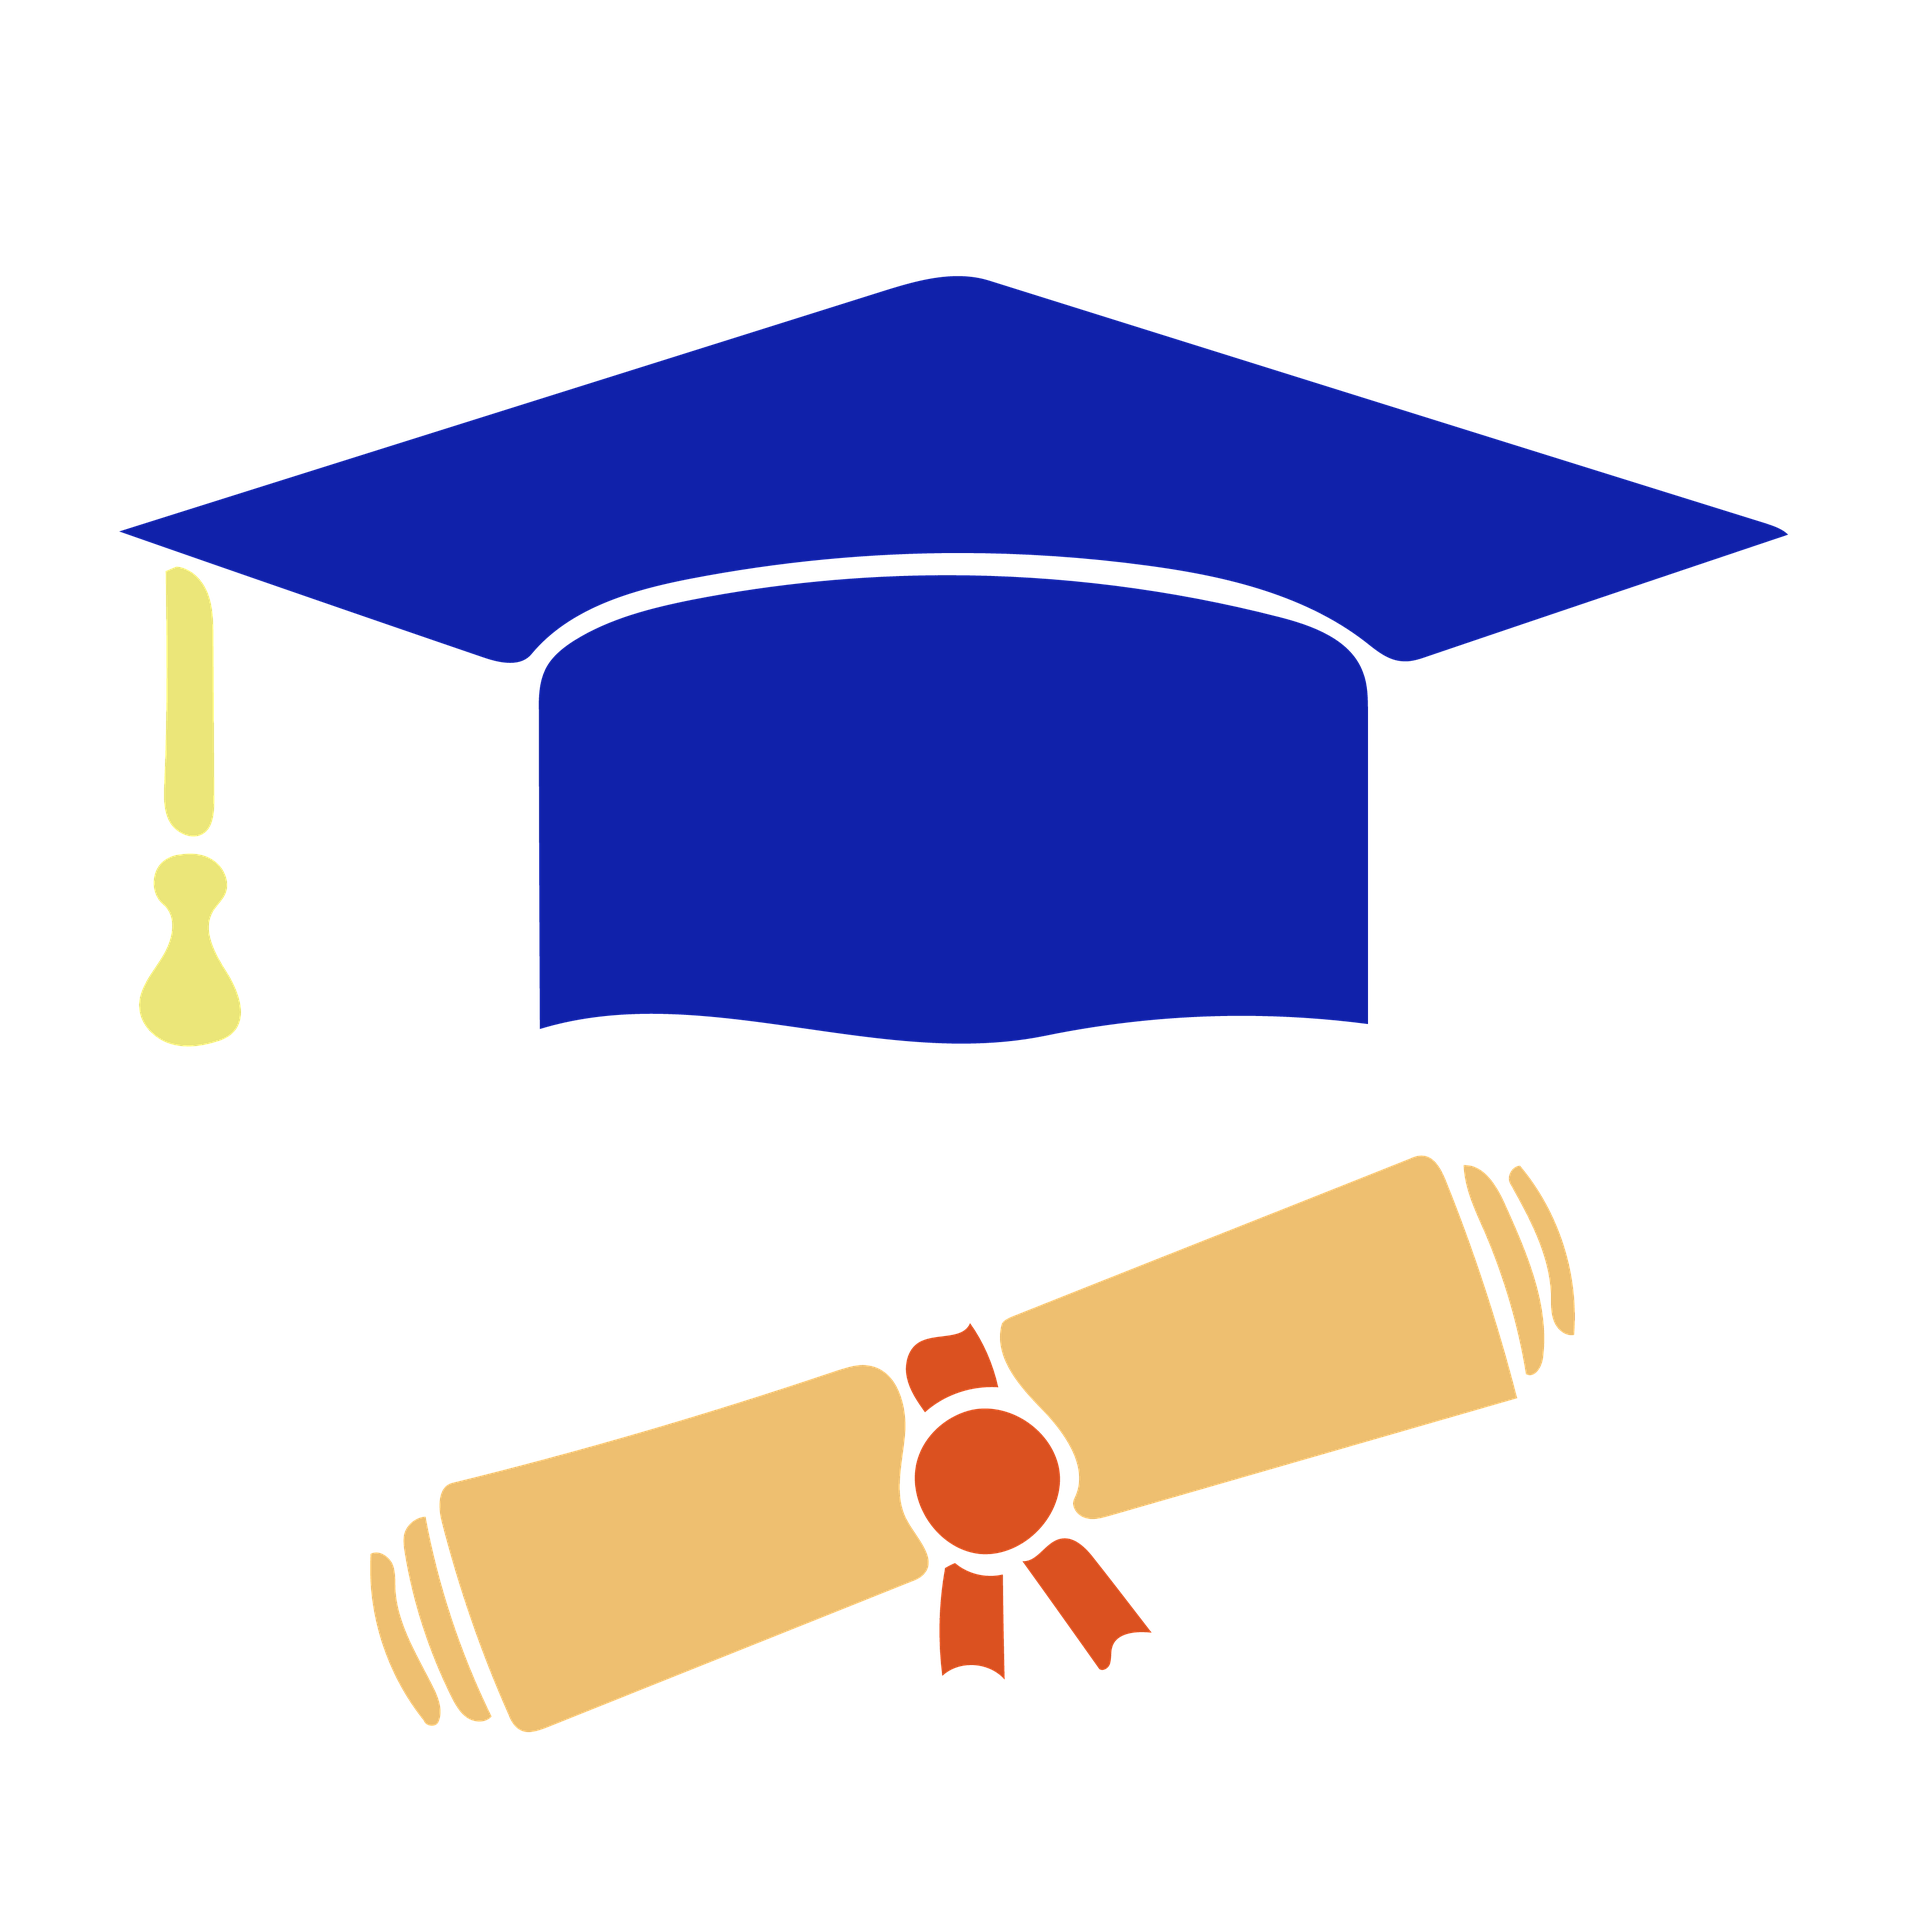 Diploma clipart college diploma, Diploma college diploma.